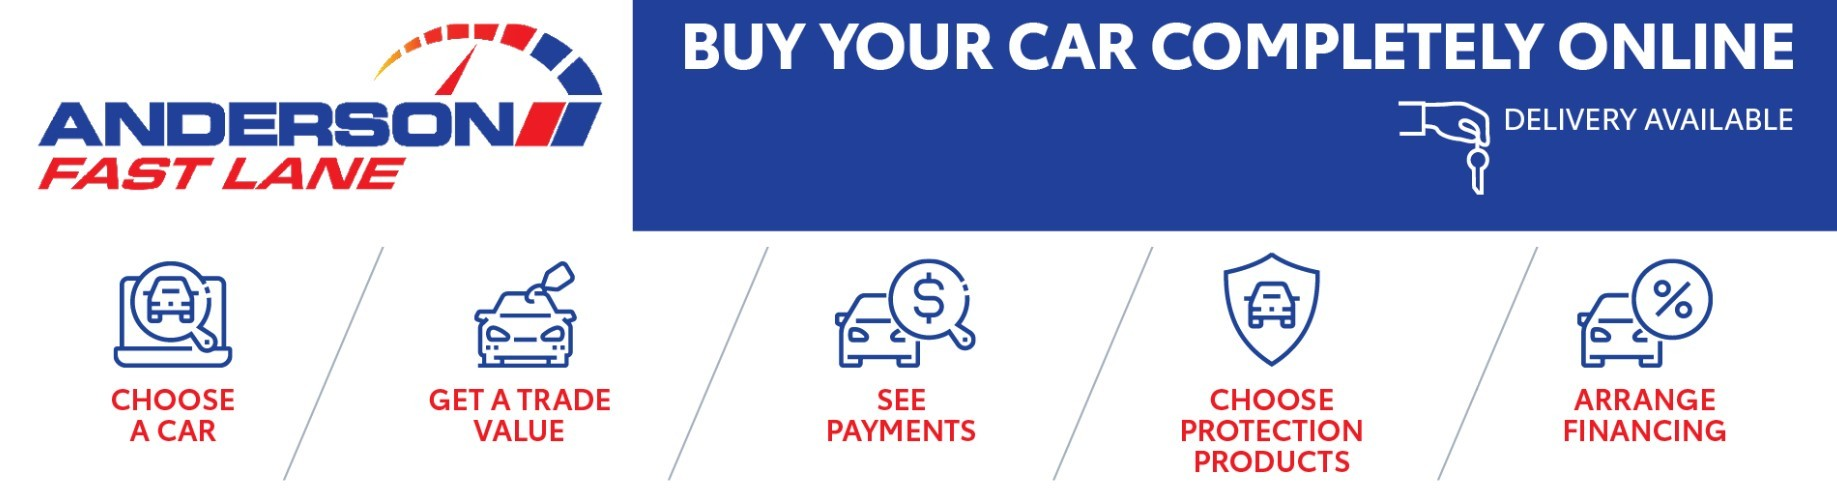 Toyota Fast Lane - Buy Your Car Online